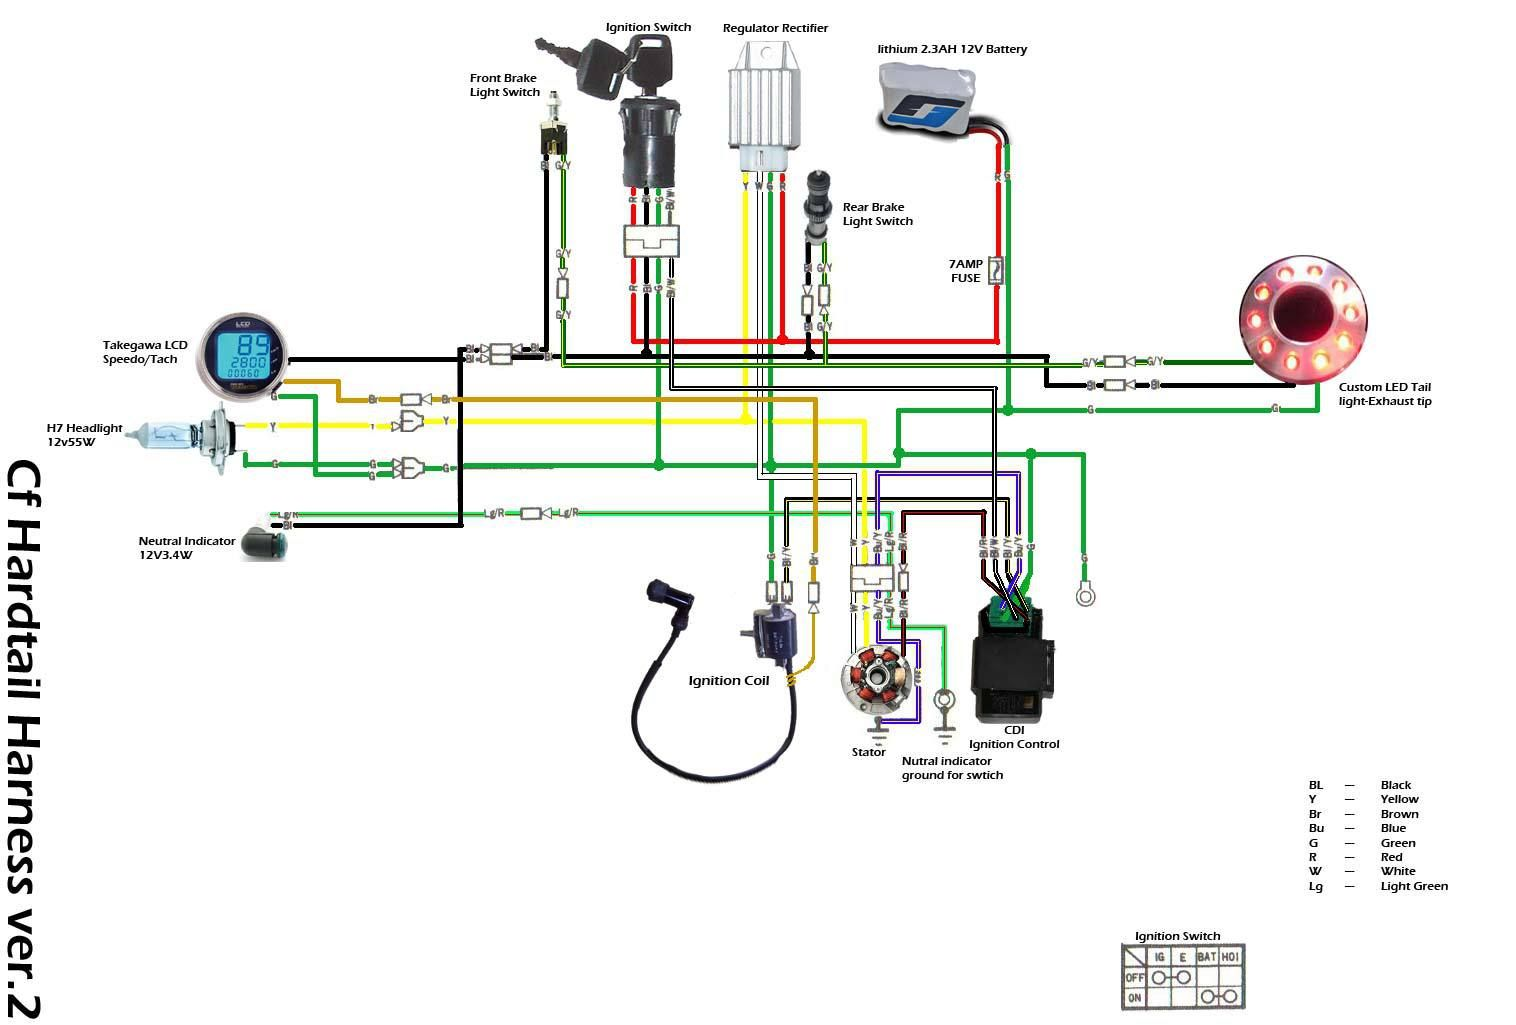 110cc Basic Wiring Setup ATVConnection Com ATV Enthusiast Community Within  110Cc Chinese Atv Diagram in 2020 | Motorcycle wiring, Pit bike, Electrical  wiringPinterest